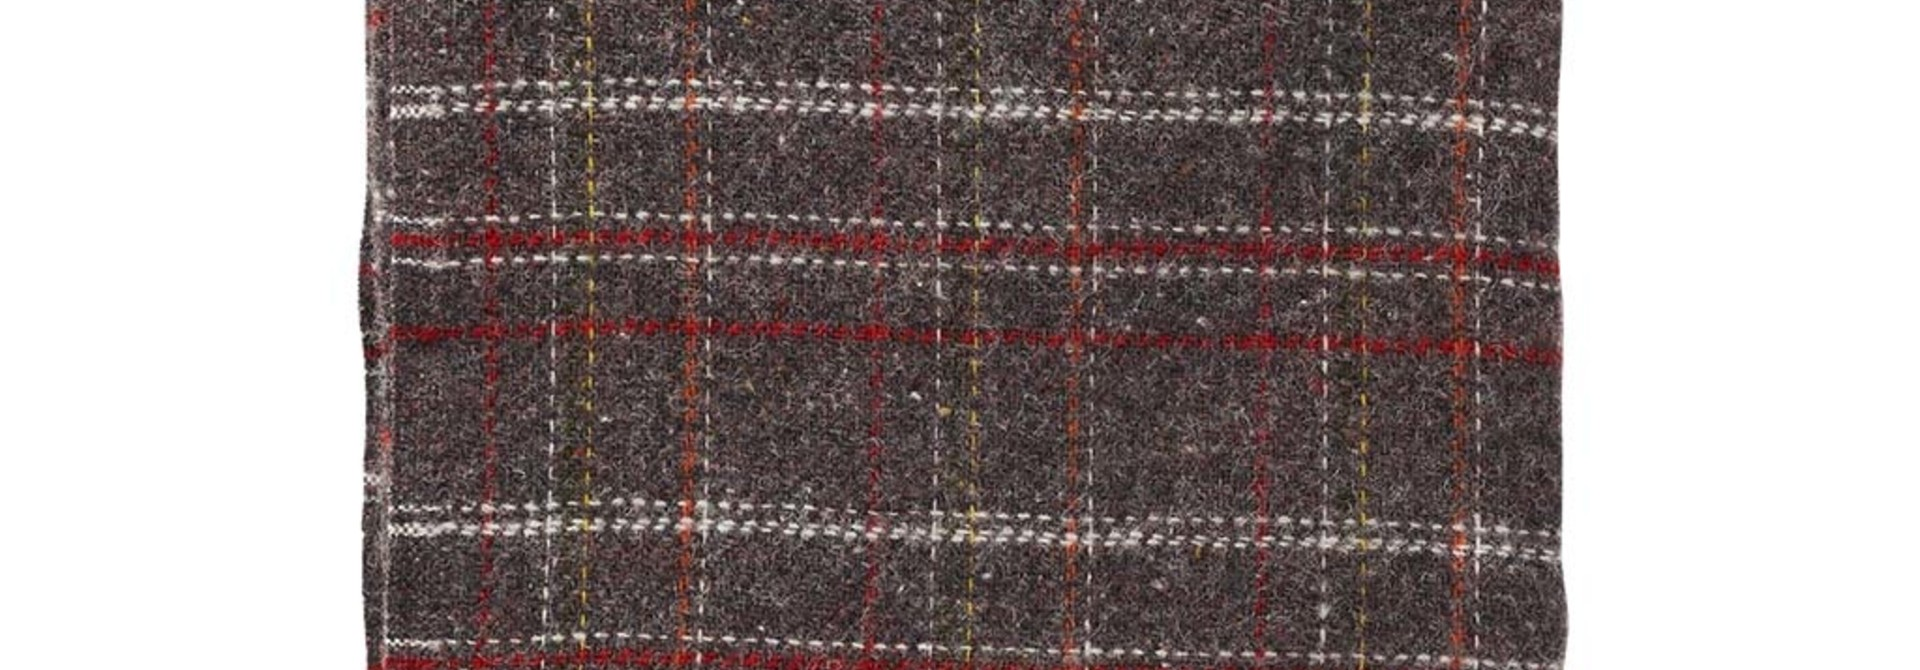 Wollen Plaid SQUARE BROWN/RED